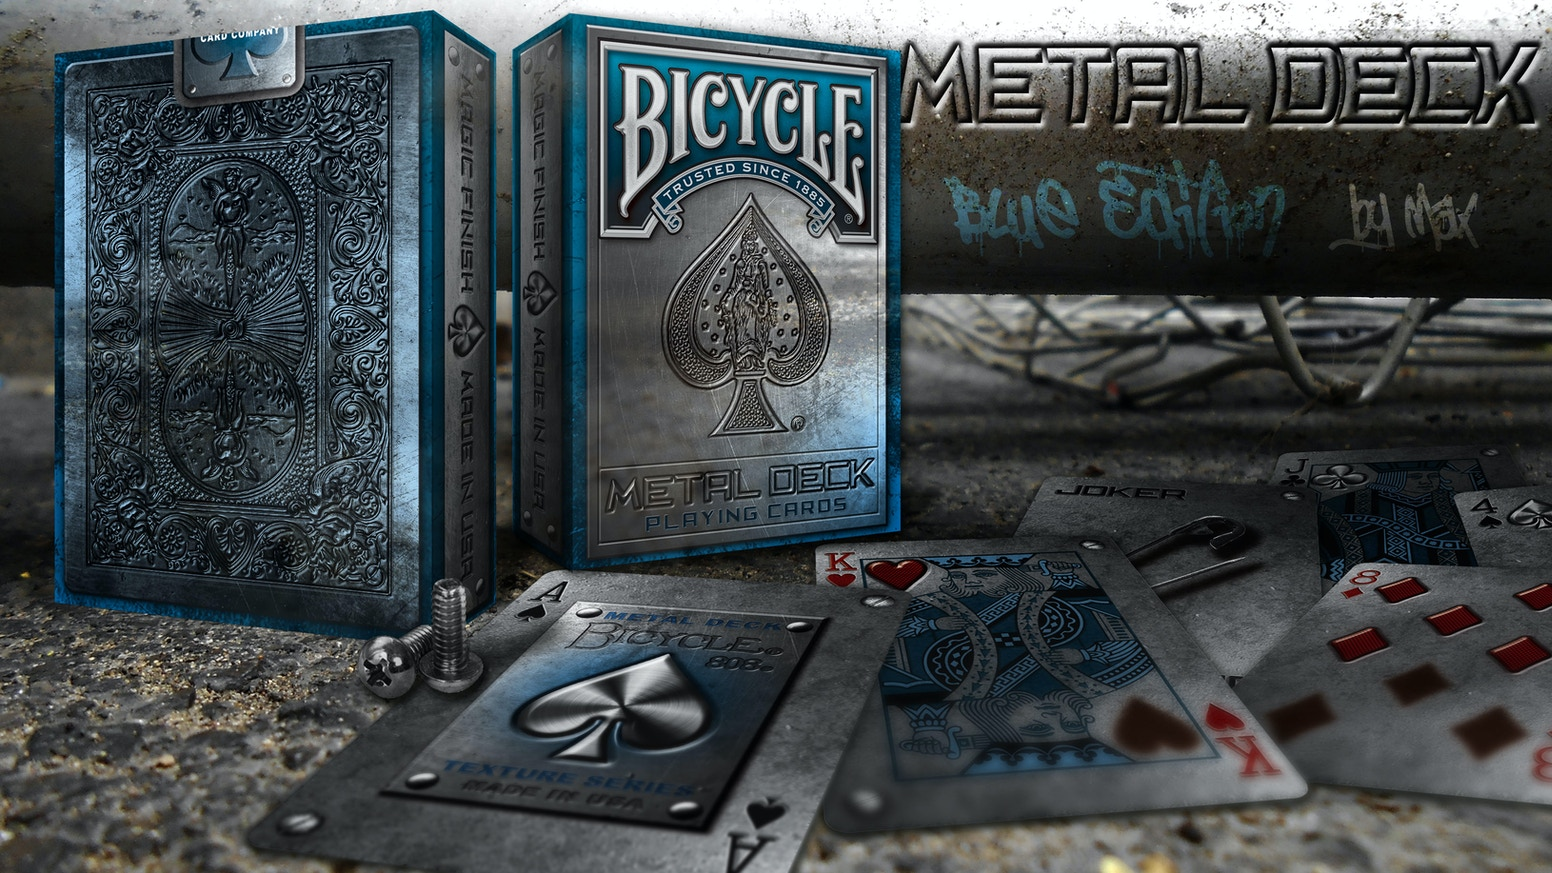 The new unlimited METAL DECK by Max (Max Playing Cards) in the TEXTURE SERIES